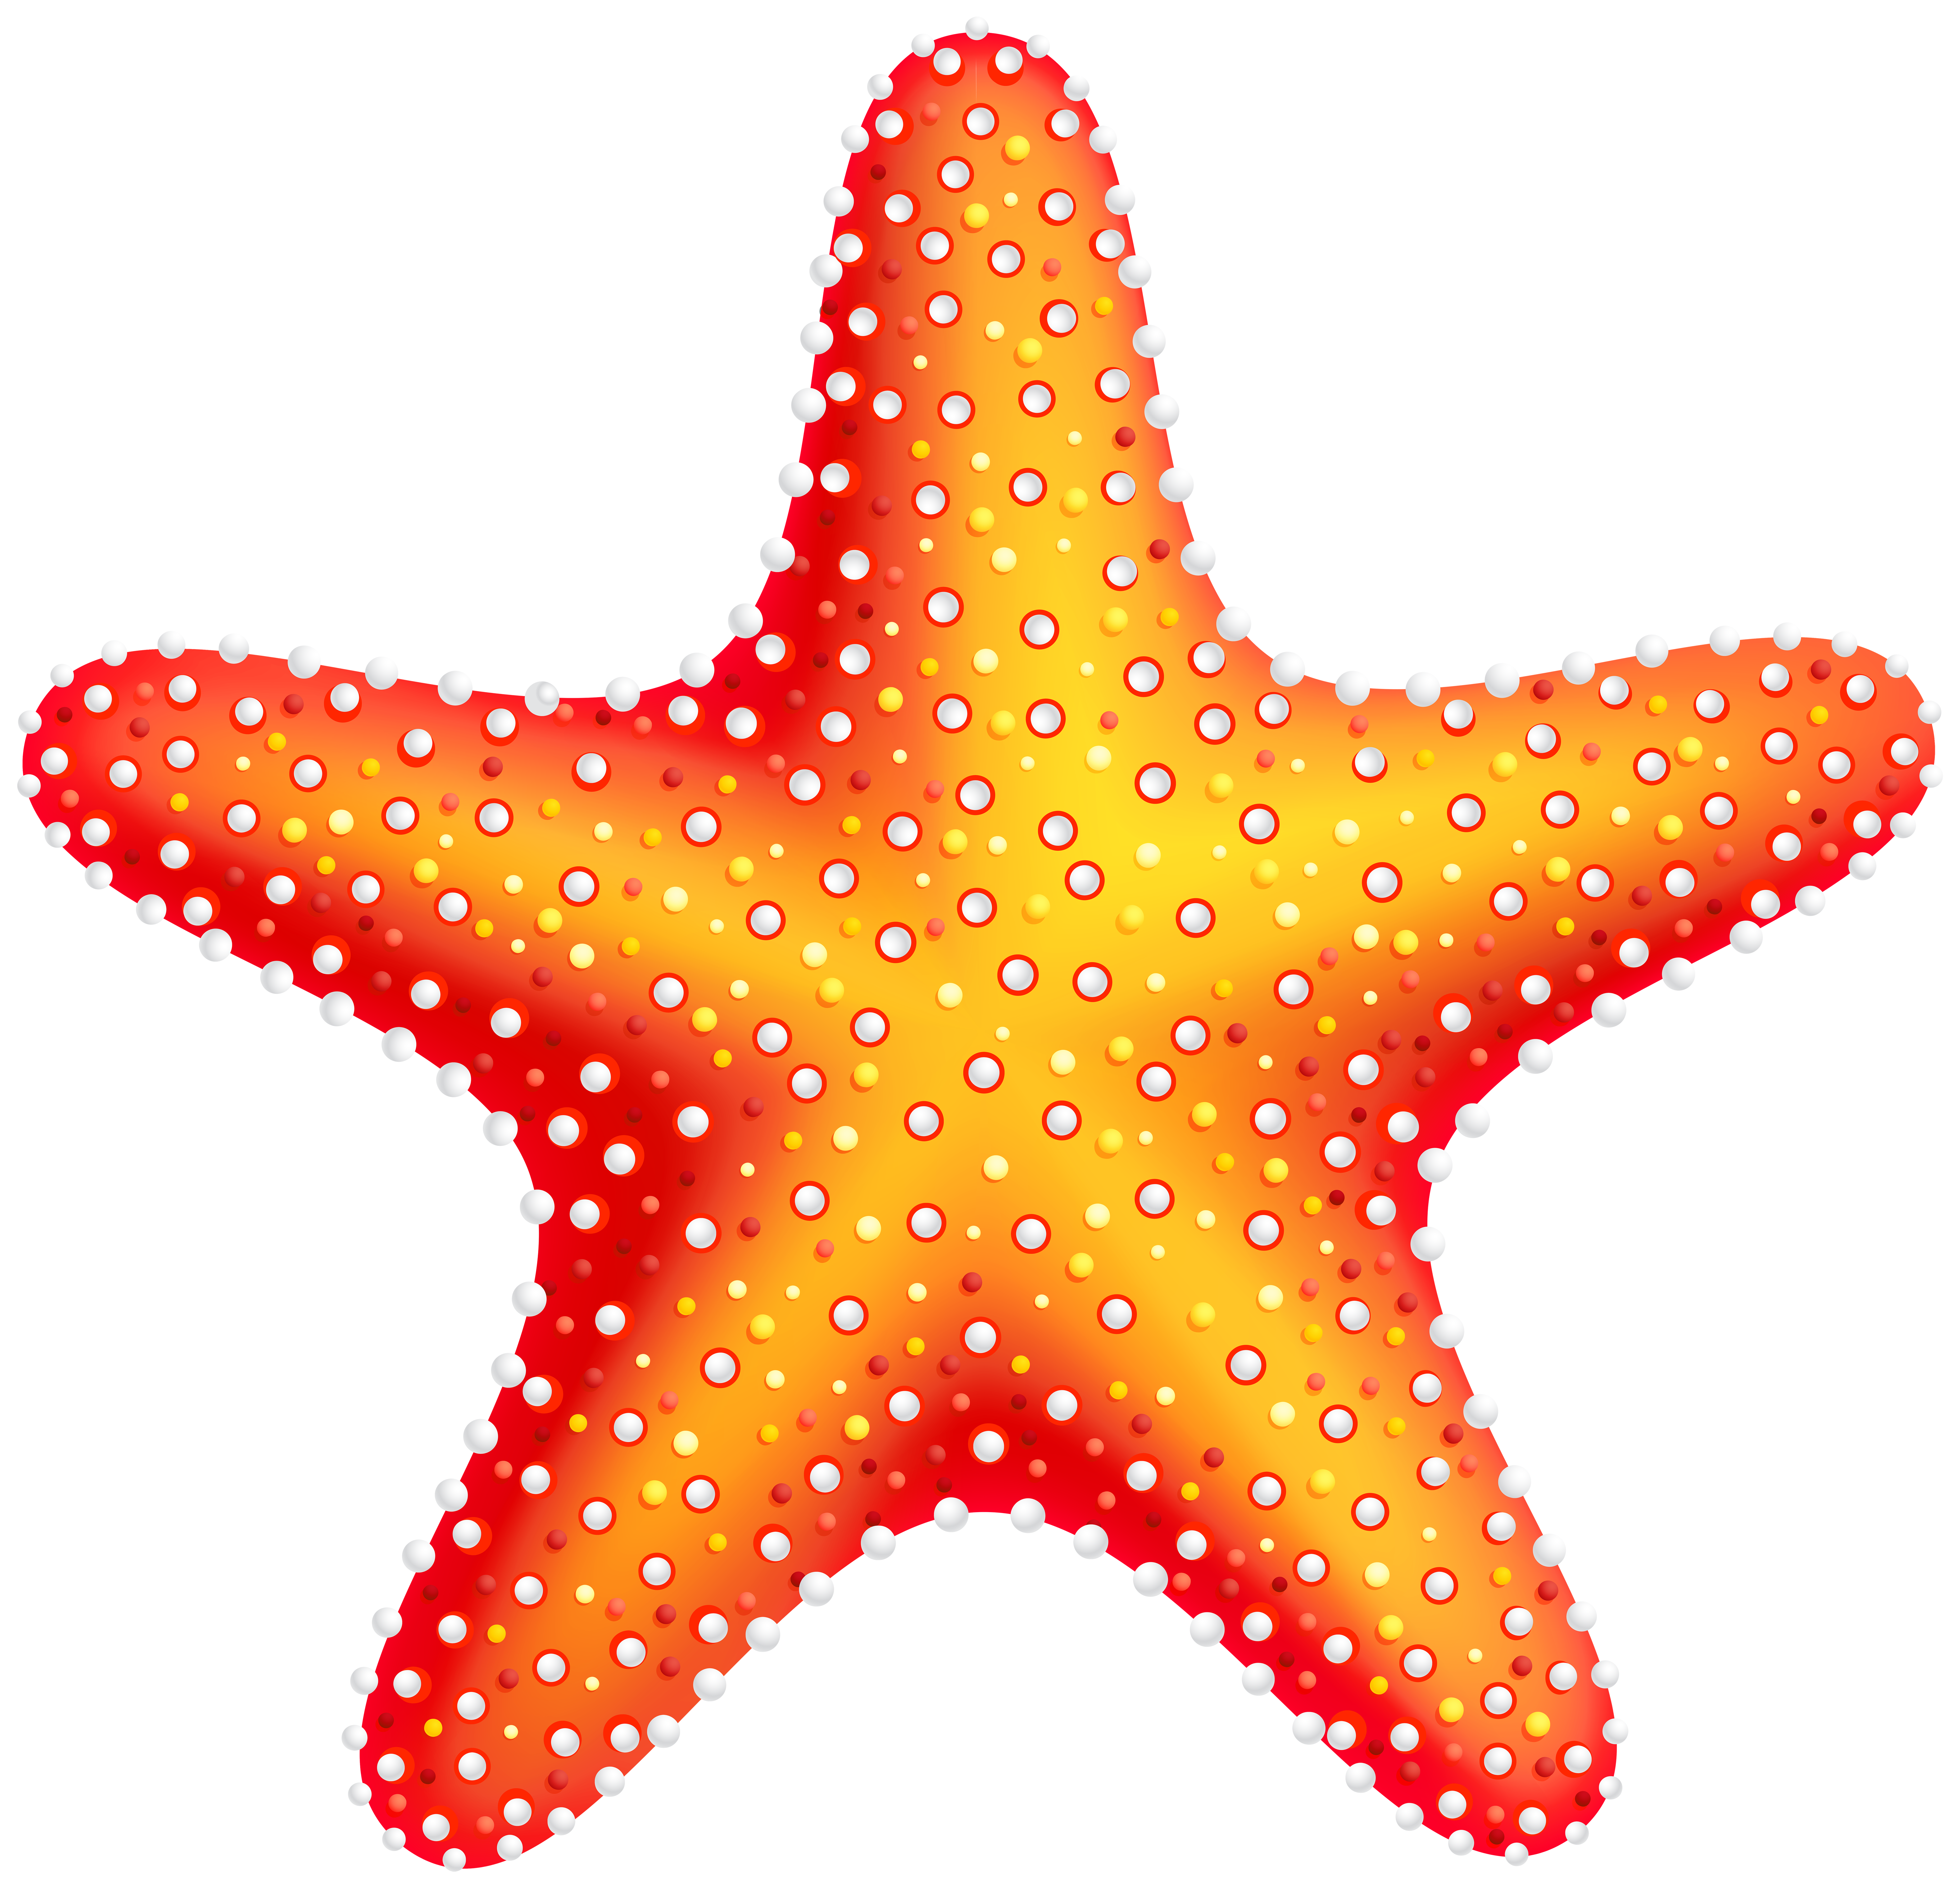 Clipart star fish png Star fish clipart - Clipart Collection | Cartoon starfish clipart ... png